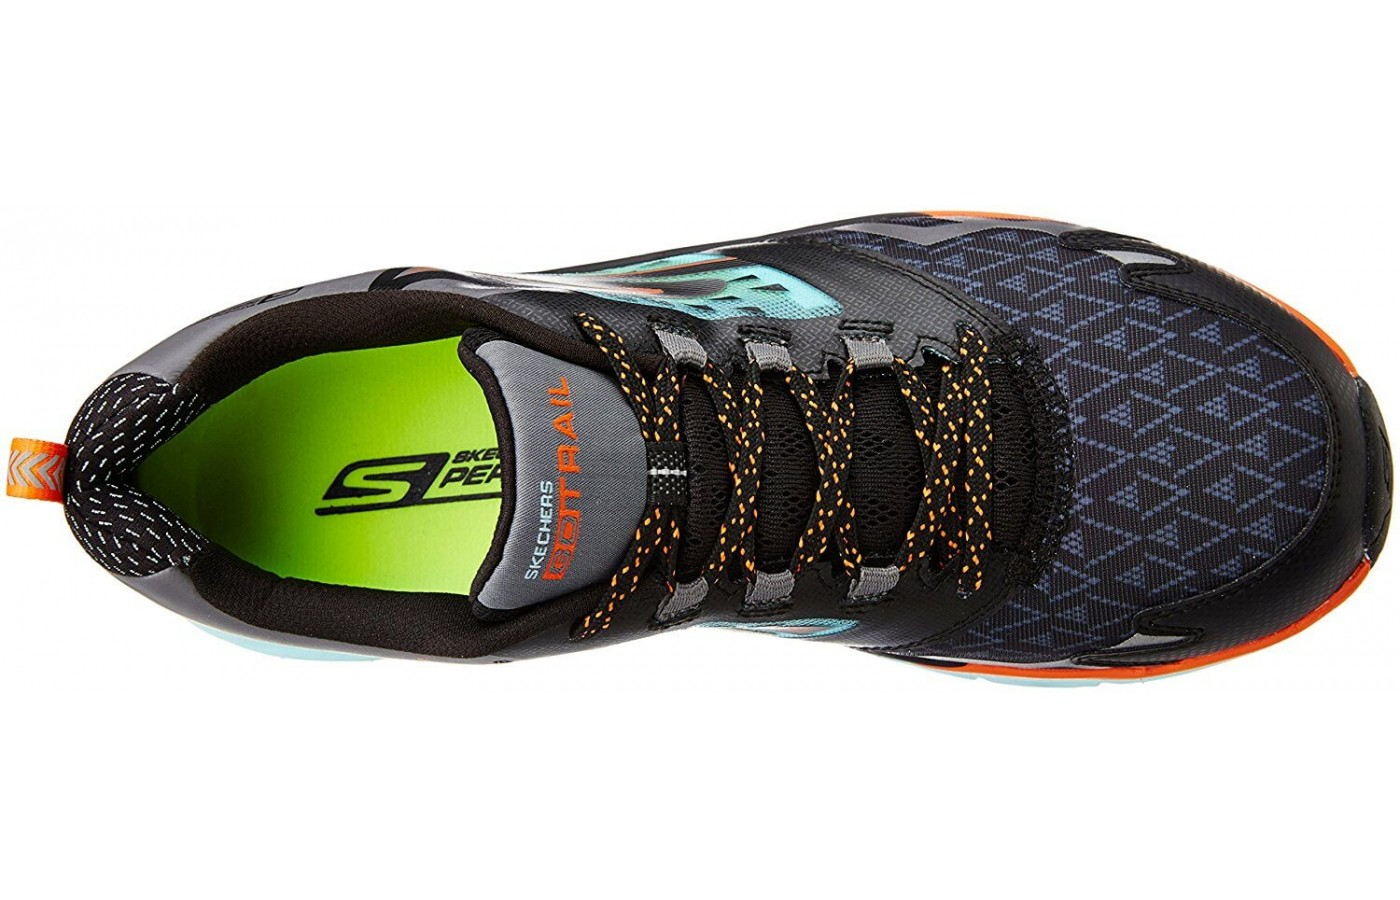 A top view of the Skechers GoTrail.